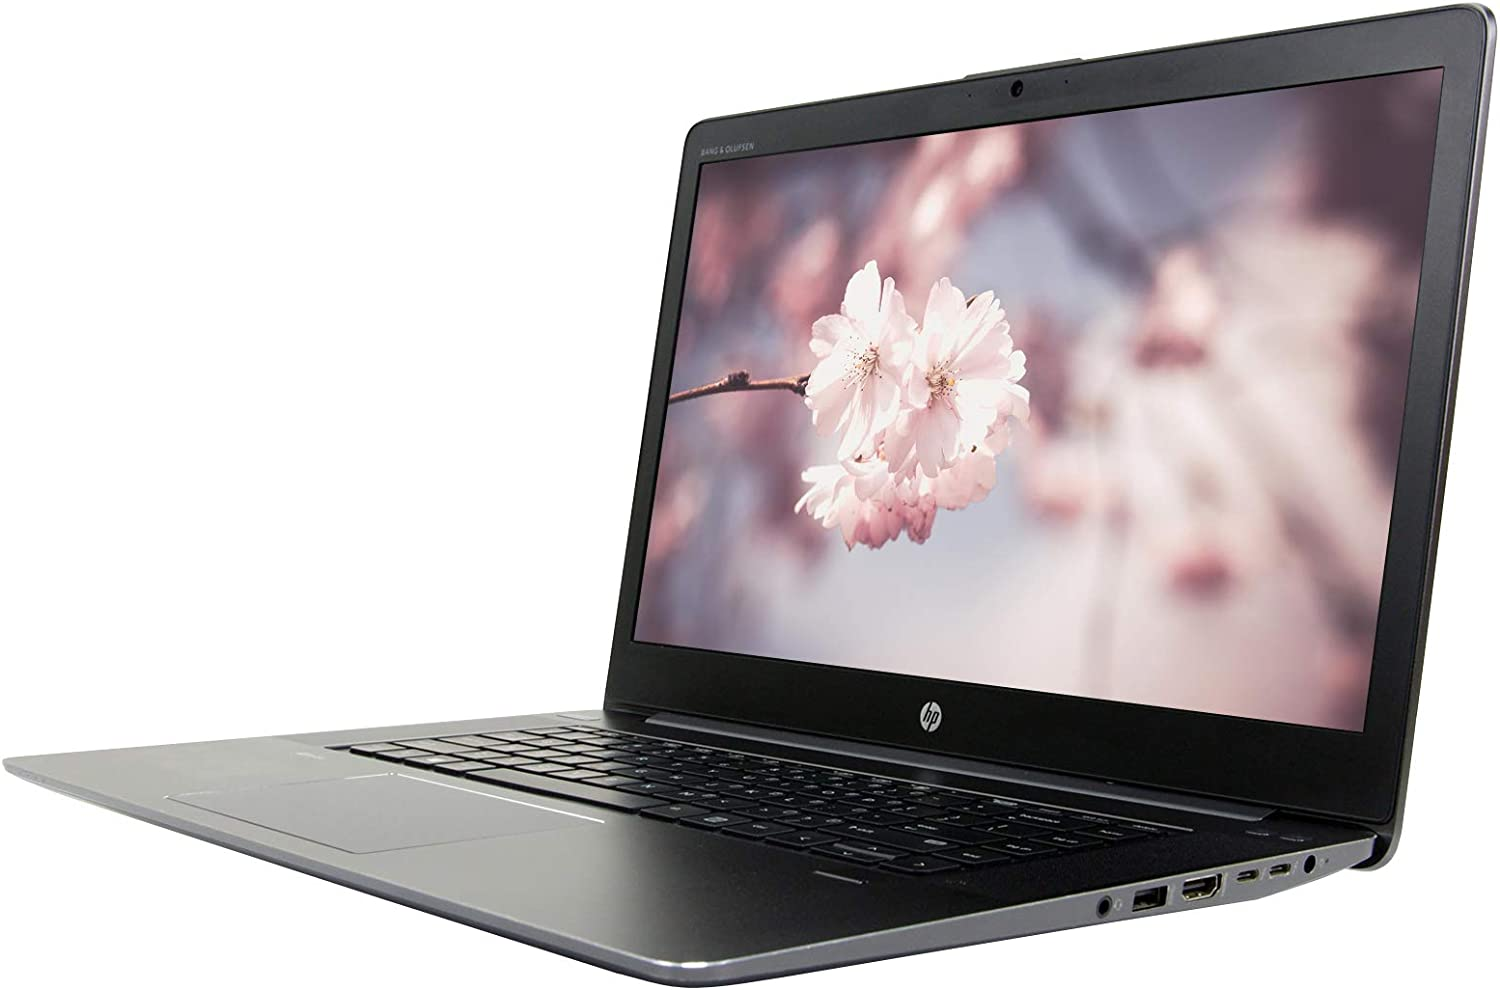 HP ZBook Studio G3 15.6in FHD Laptop, Core i7-6820HQ 2.7GHz, 32GB, 512GB Solid State Drive, Windows 10 Pro 64Bit, Webcam, (Renewed)